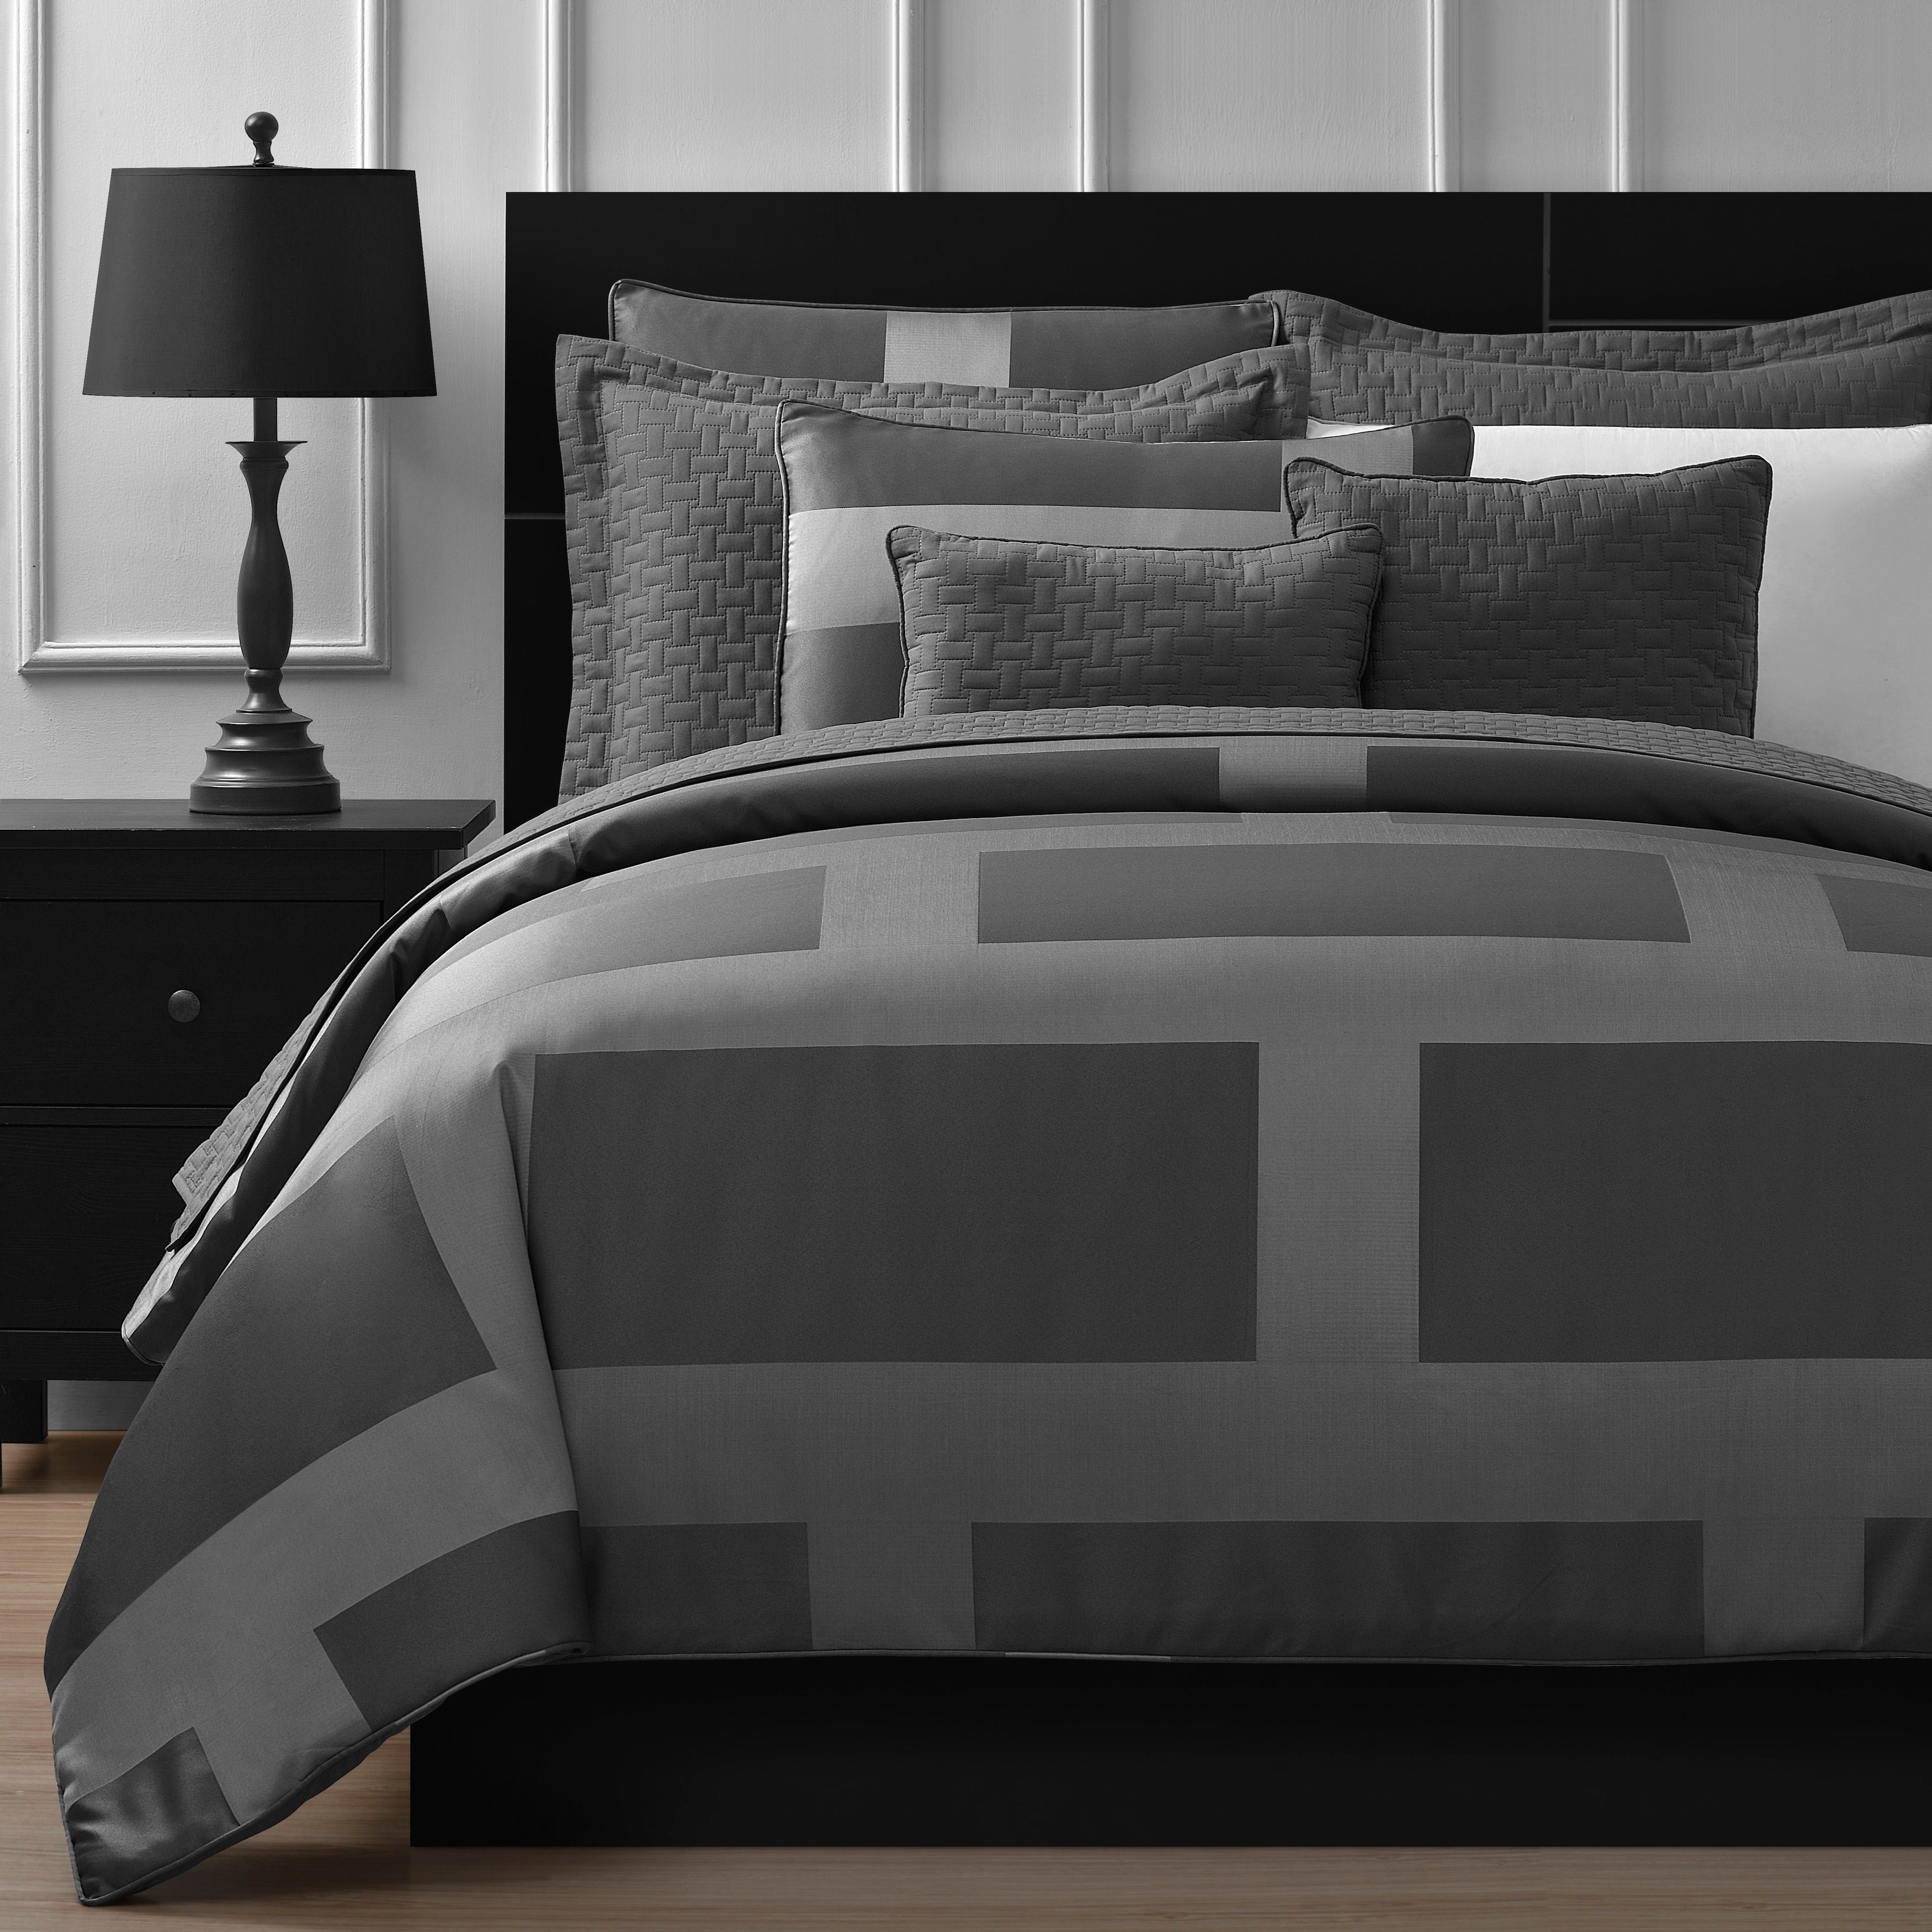 comforter full blue bed clearance size black grey and to sale of queen twin where sets bedroom collections bedding set teen white cheap stores gray buy